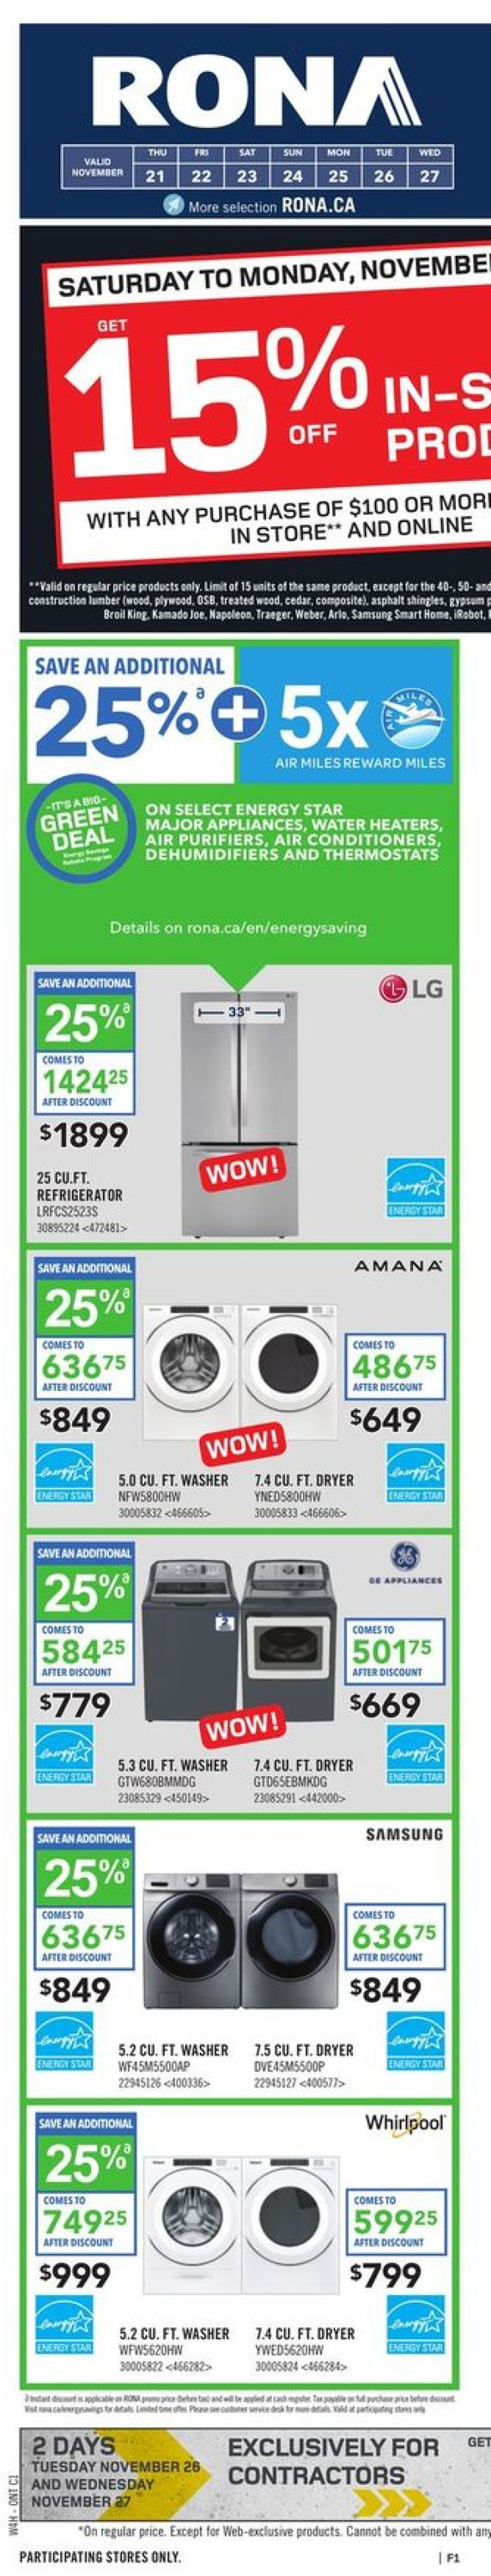 RONA BLACK FRIDAY 2019 FLYER Flyer - 11/21-11/27/2019